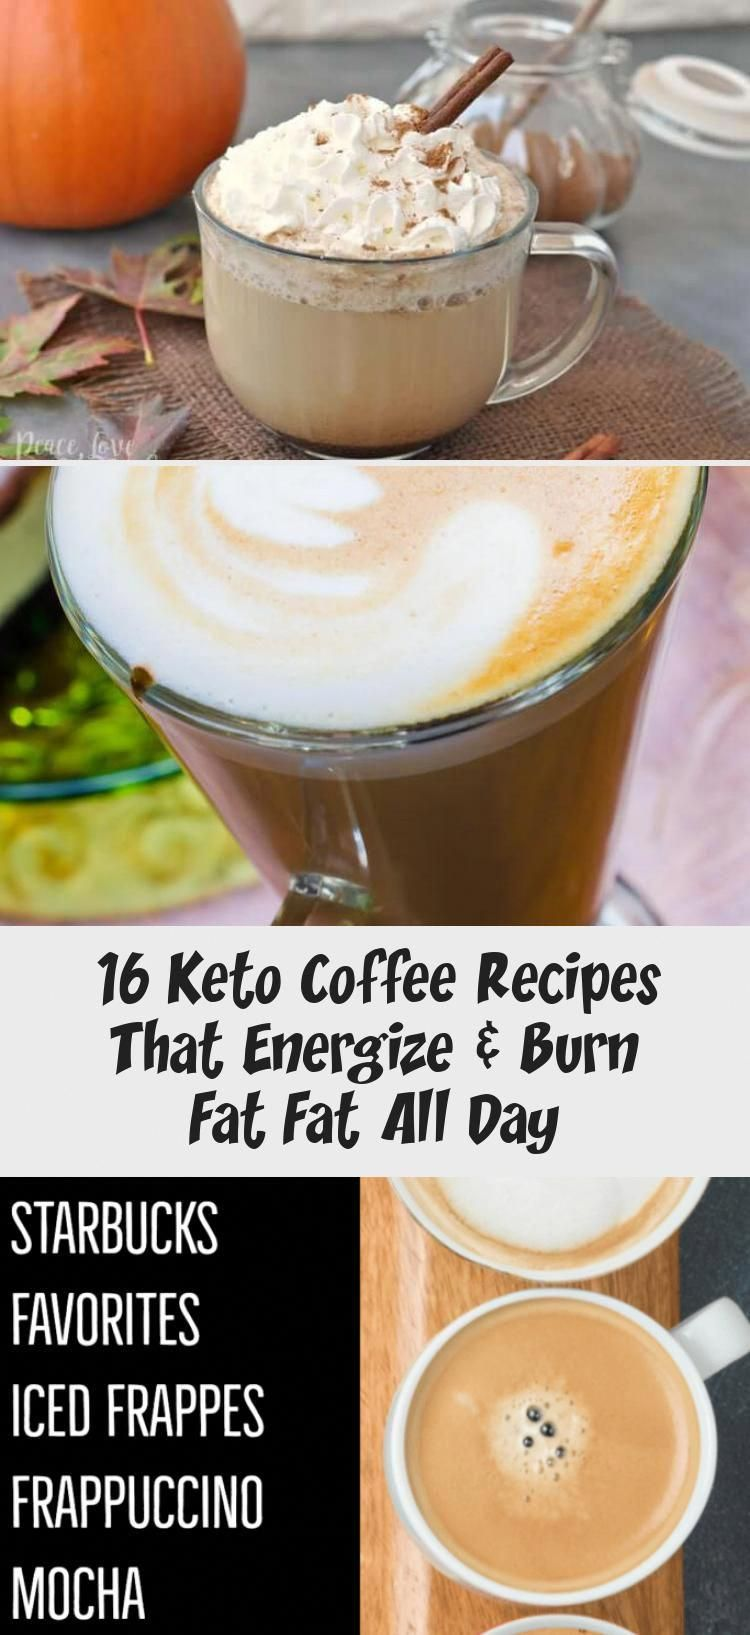 Looking For Easy Keto Coffee Recipes To Make At Home Check Out This Collection Of Easy Keto Cof In 2020 Keto Coffee Recipe Starbucks Recipes Green Coffee Bean Extract